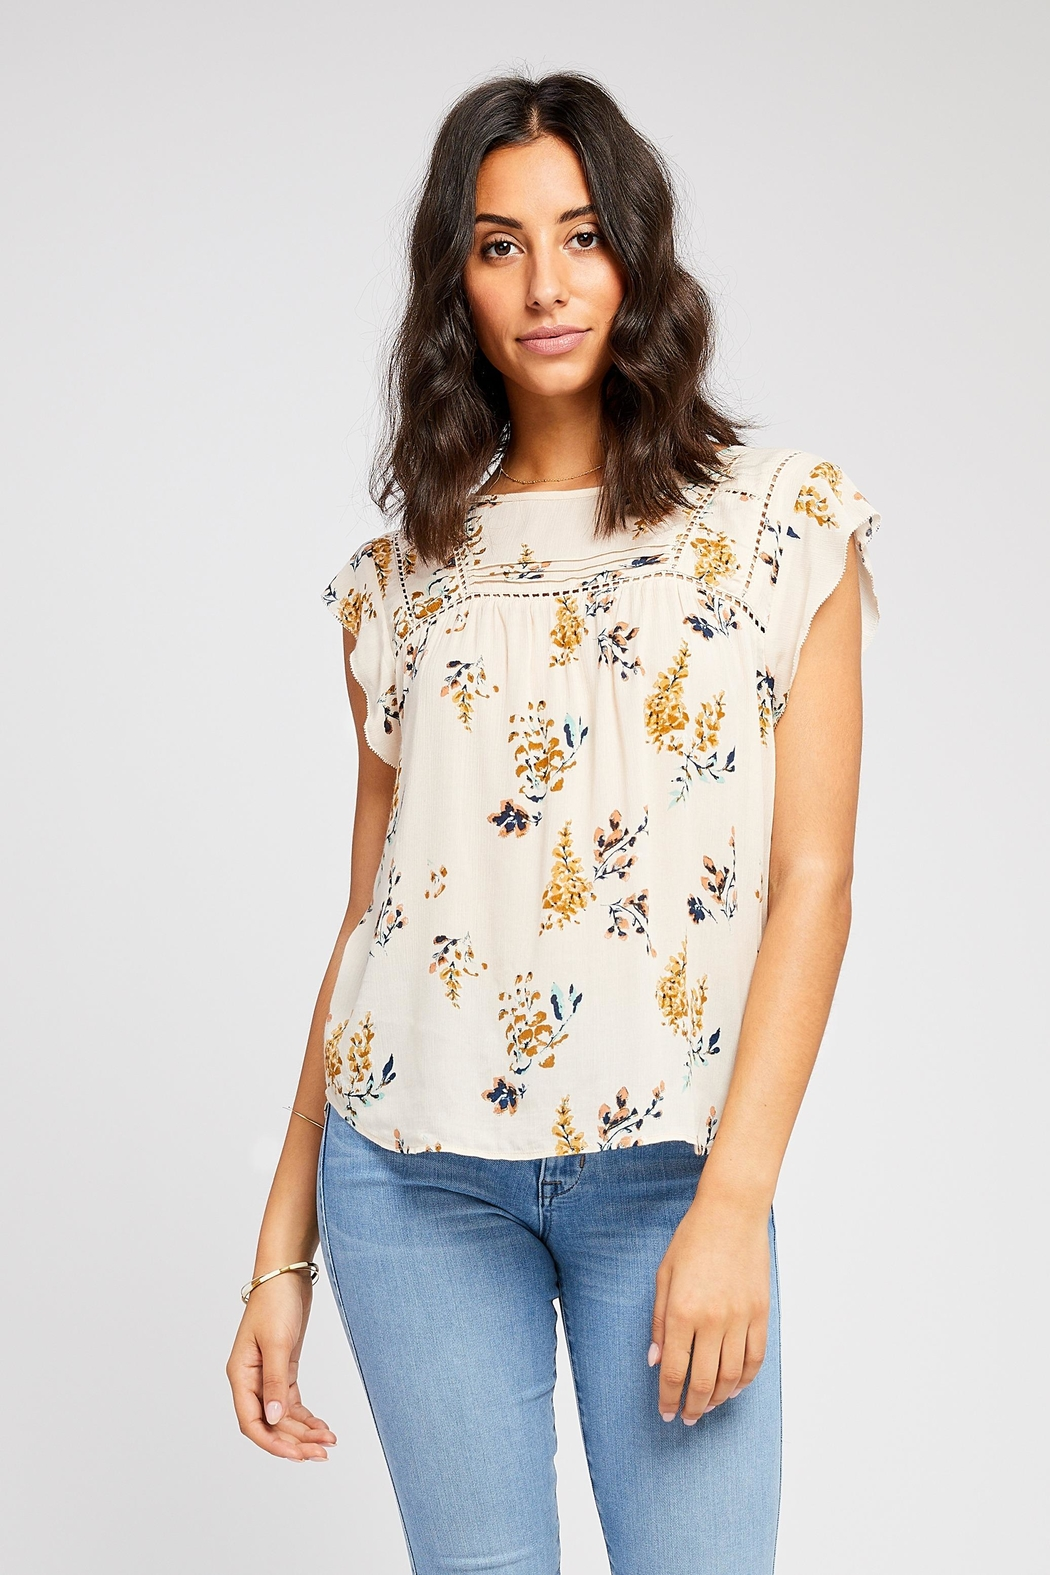 Gentle Fawn Garance Floral Top - Main Image